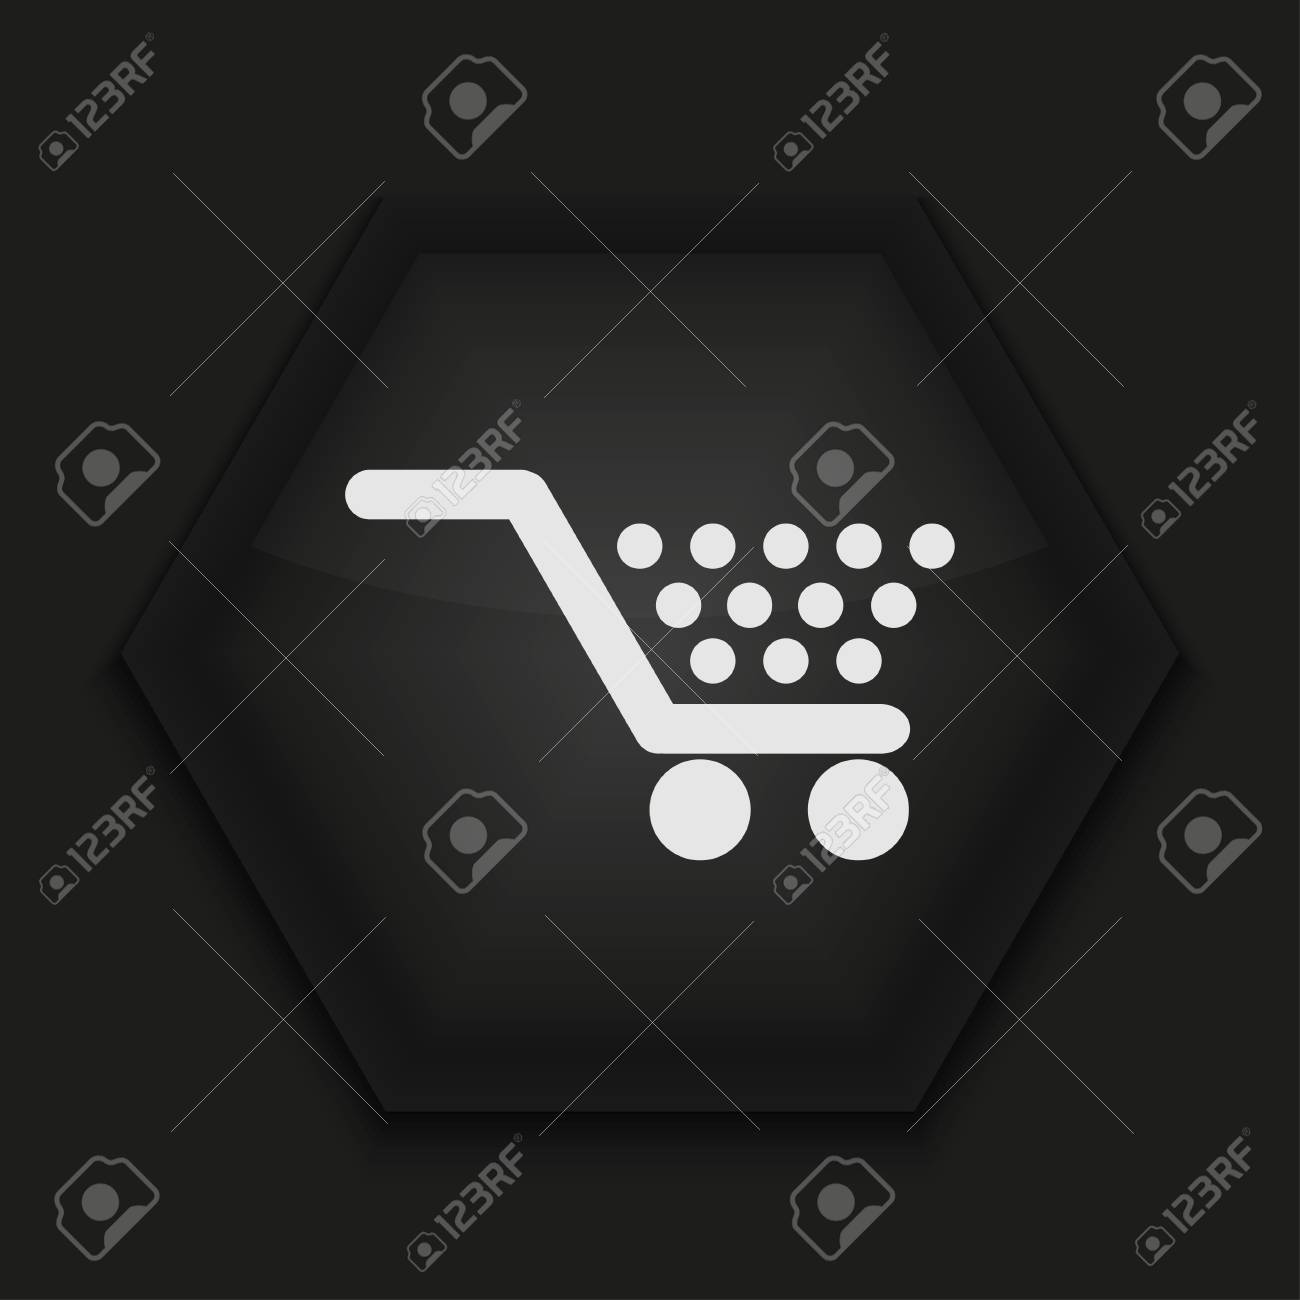 Vector creative icon on black background. Eps10 Stock Vector - 17274345